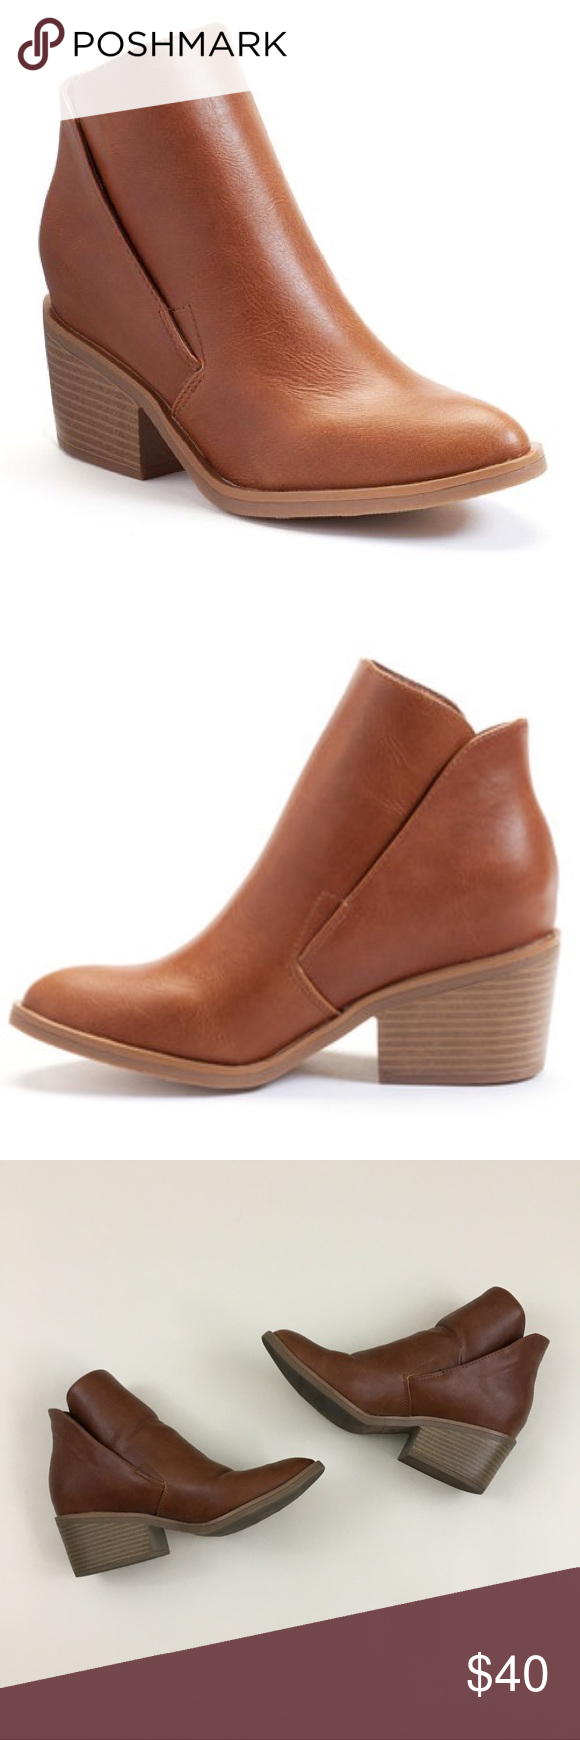 60ec636631e7 Apt. 9 hidden wedge cognac booties size 9 Apt. 9 hidden wedge cognac booties